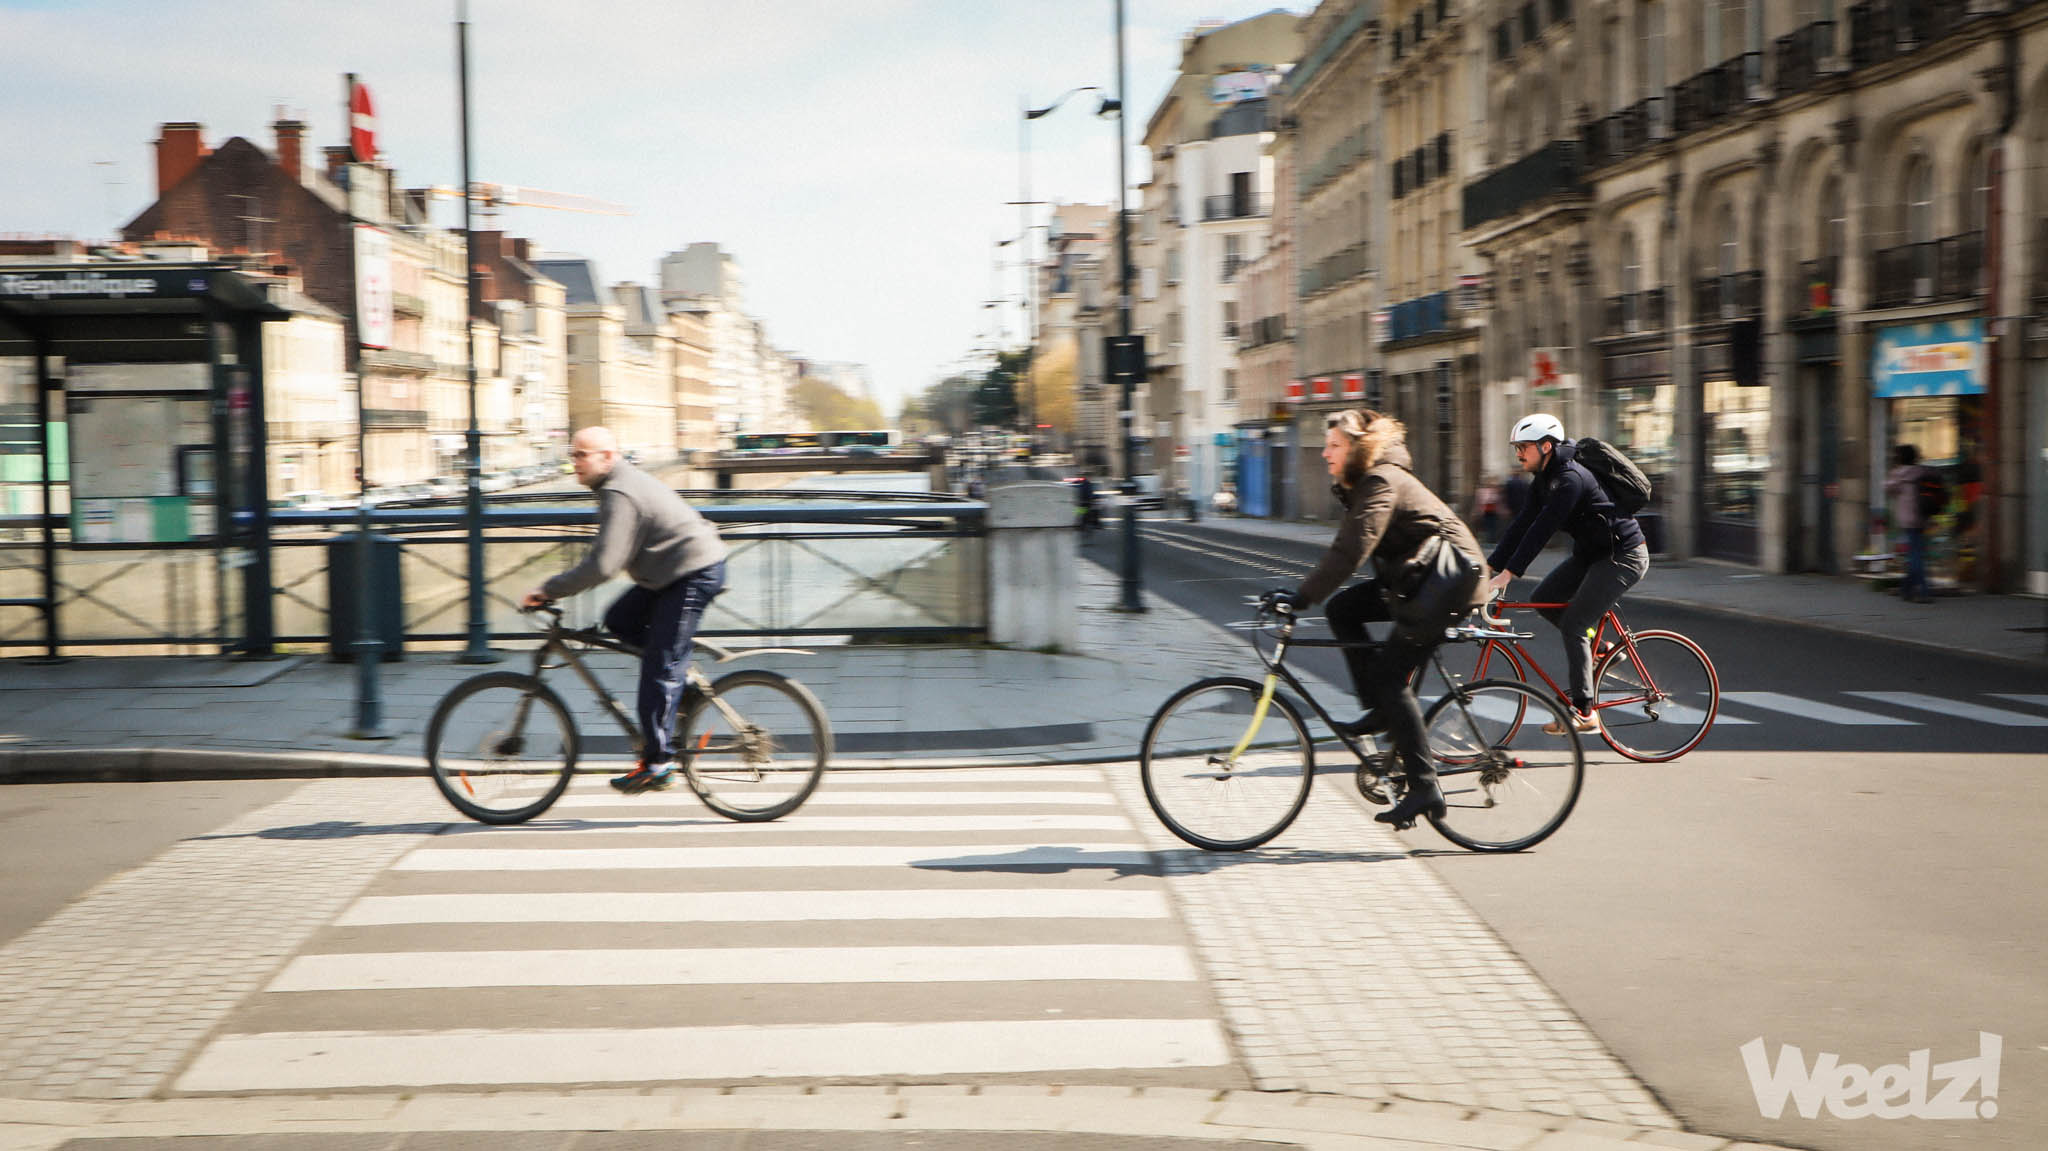 Weelz Rennes Velo Urbain Cycliste In Out Mobilites 3953